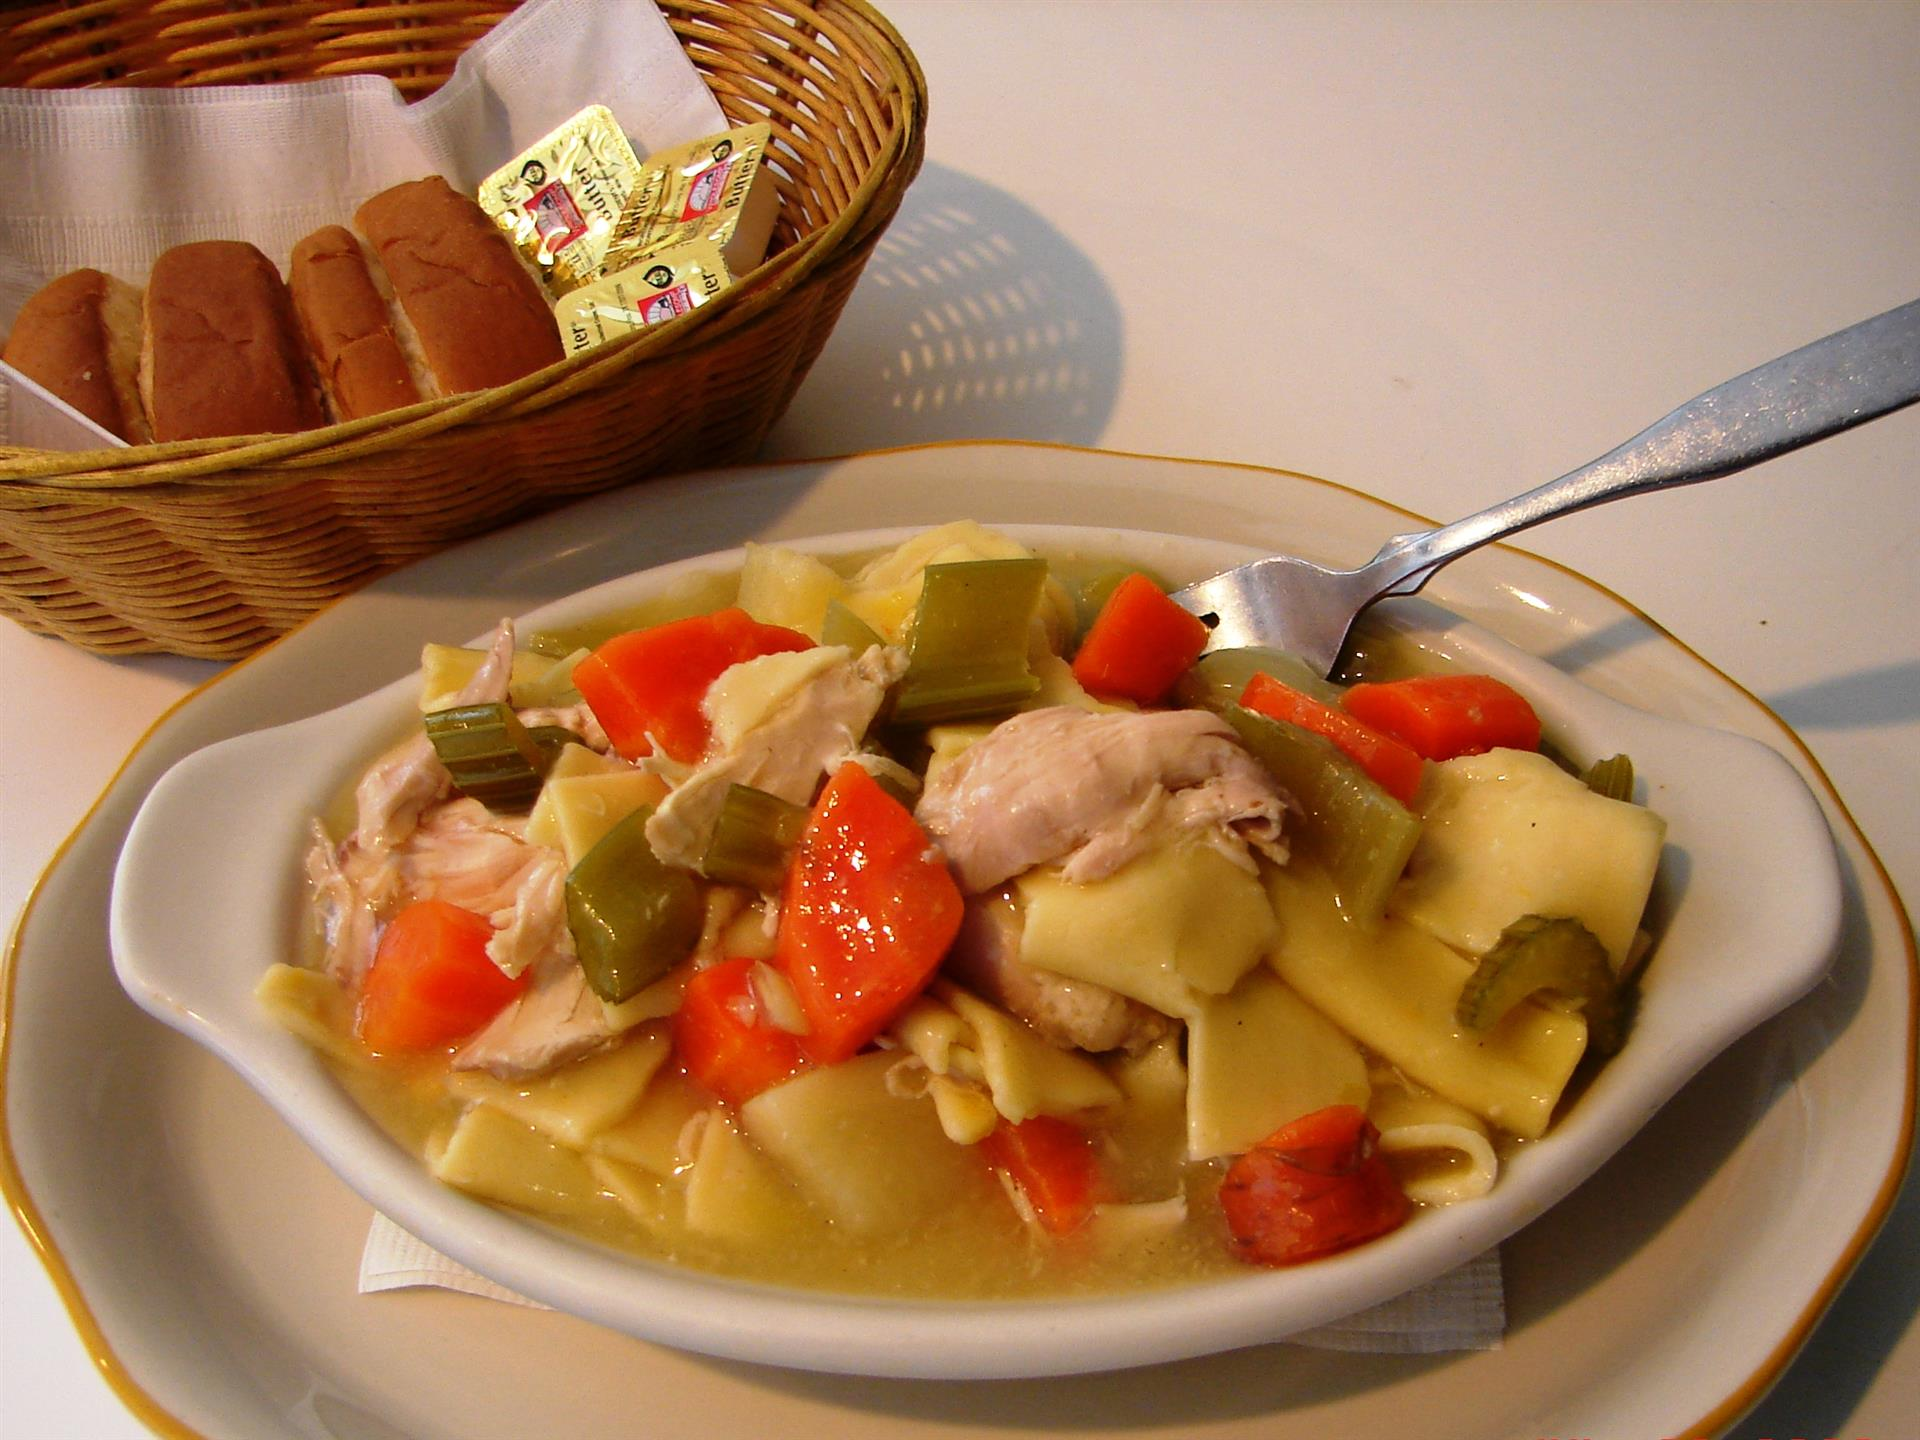 Chicken noodle soup with side of rolls in basket